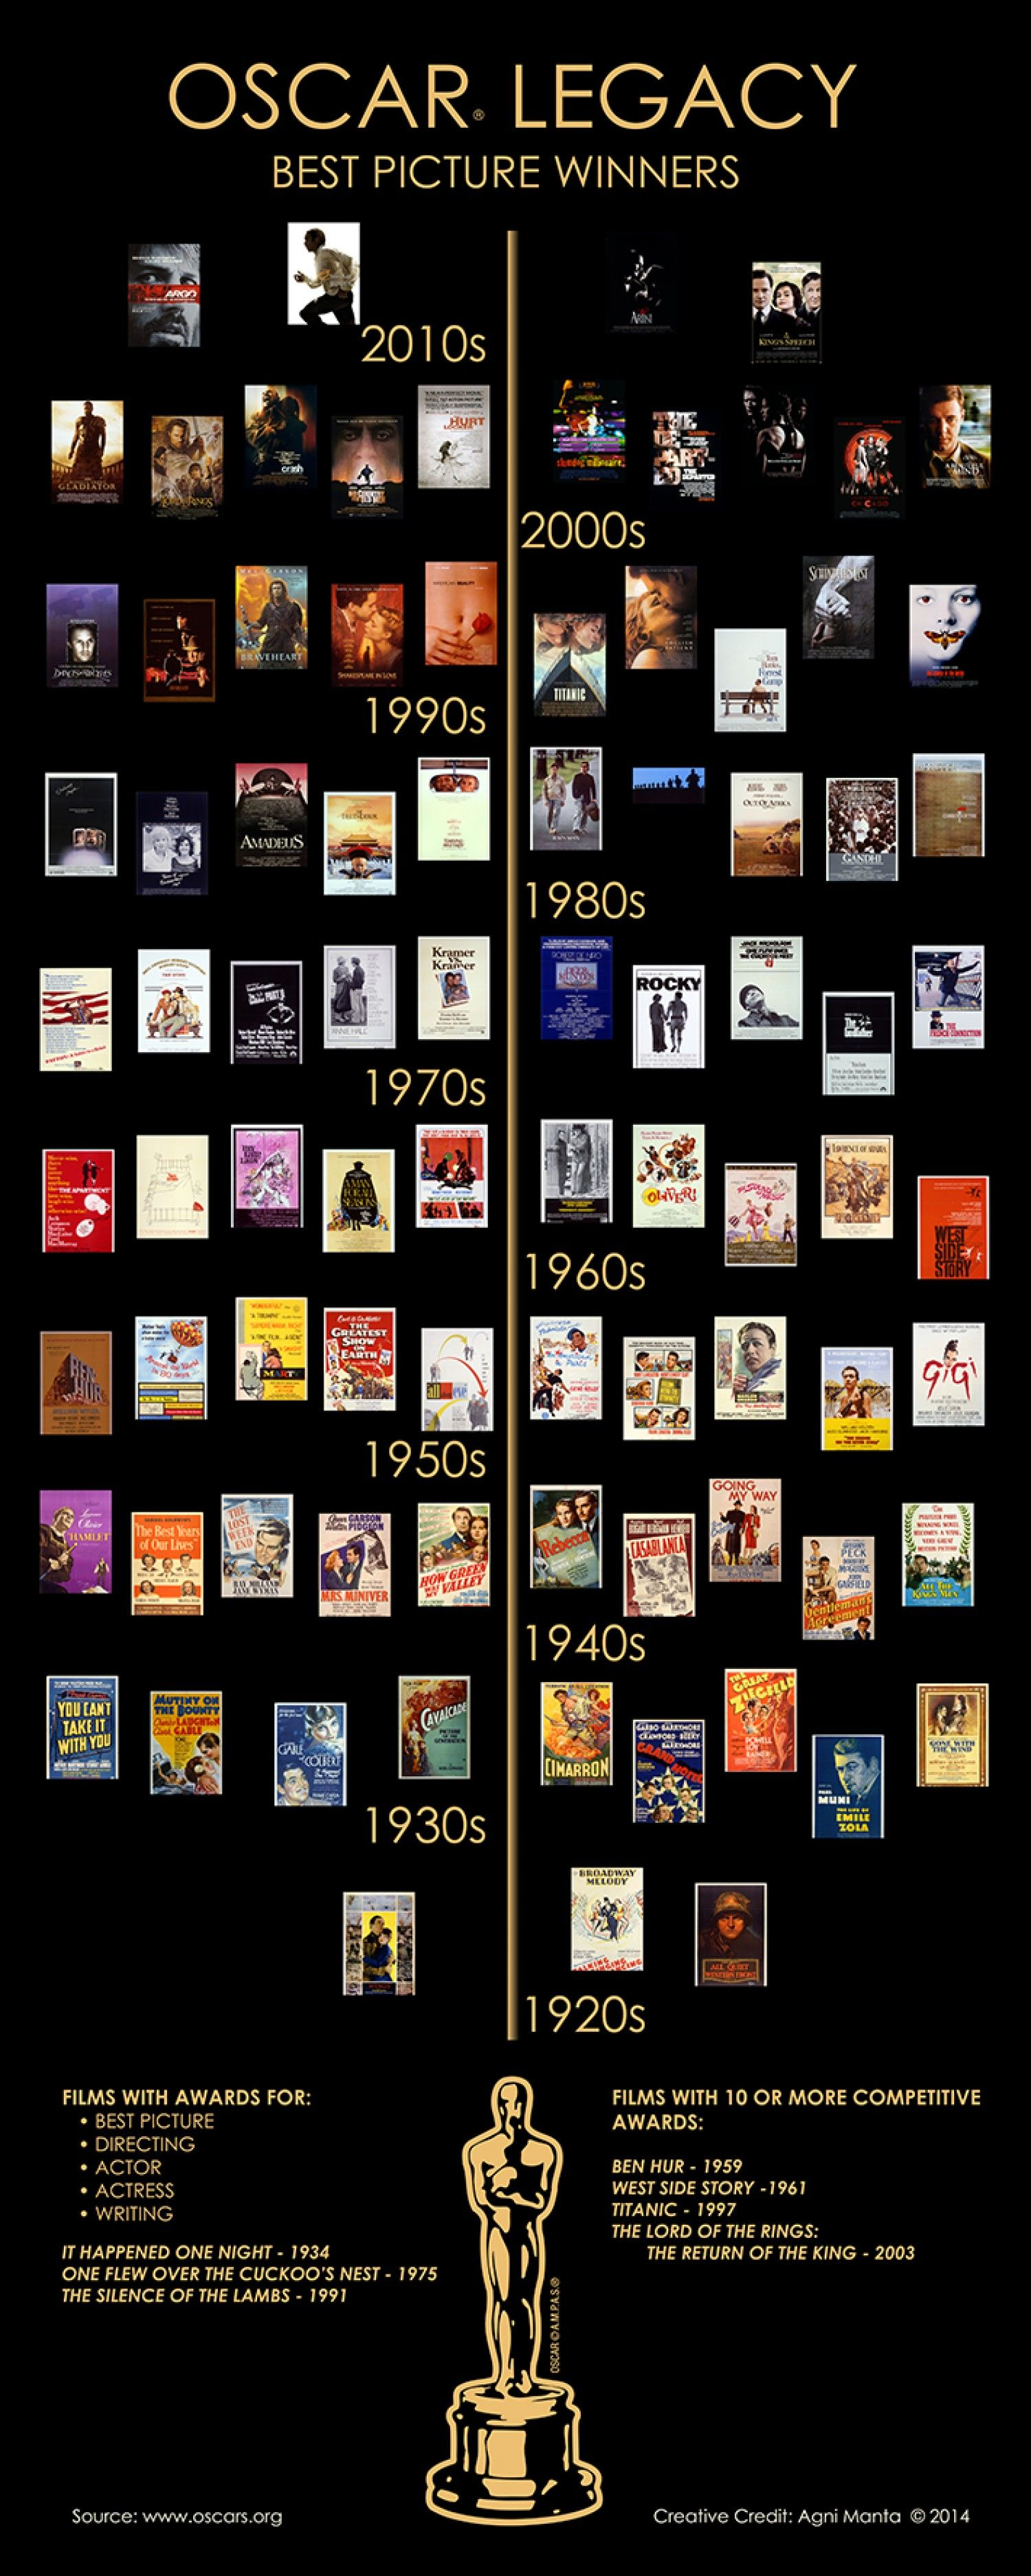 3/6/14 2:06a The Best Picture Oscar Historical Legacy Poster